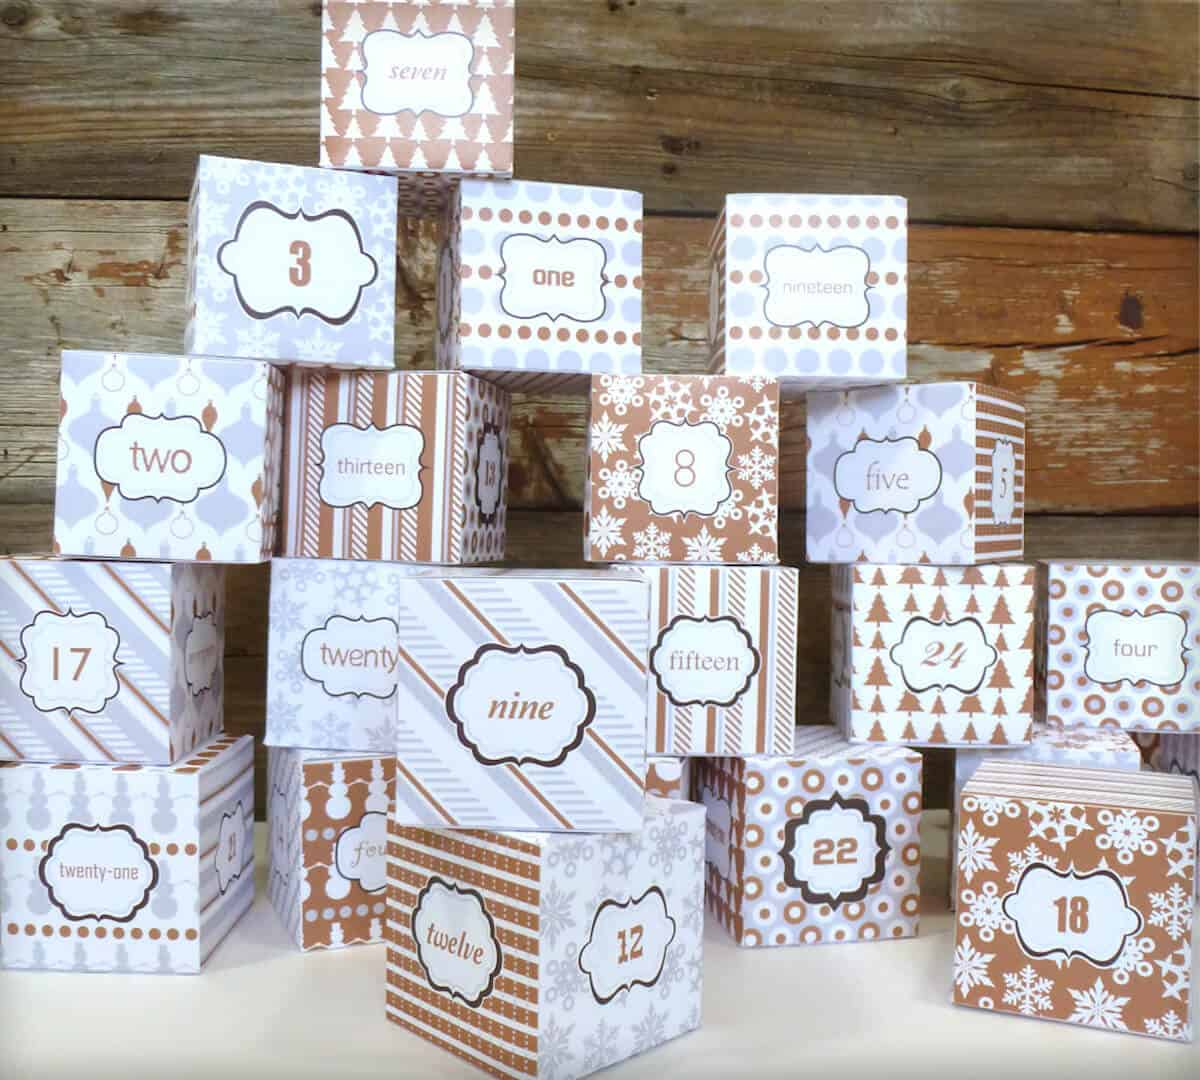 Recycled Holiday Crafts - DIY Advent Calendar Ideas